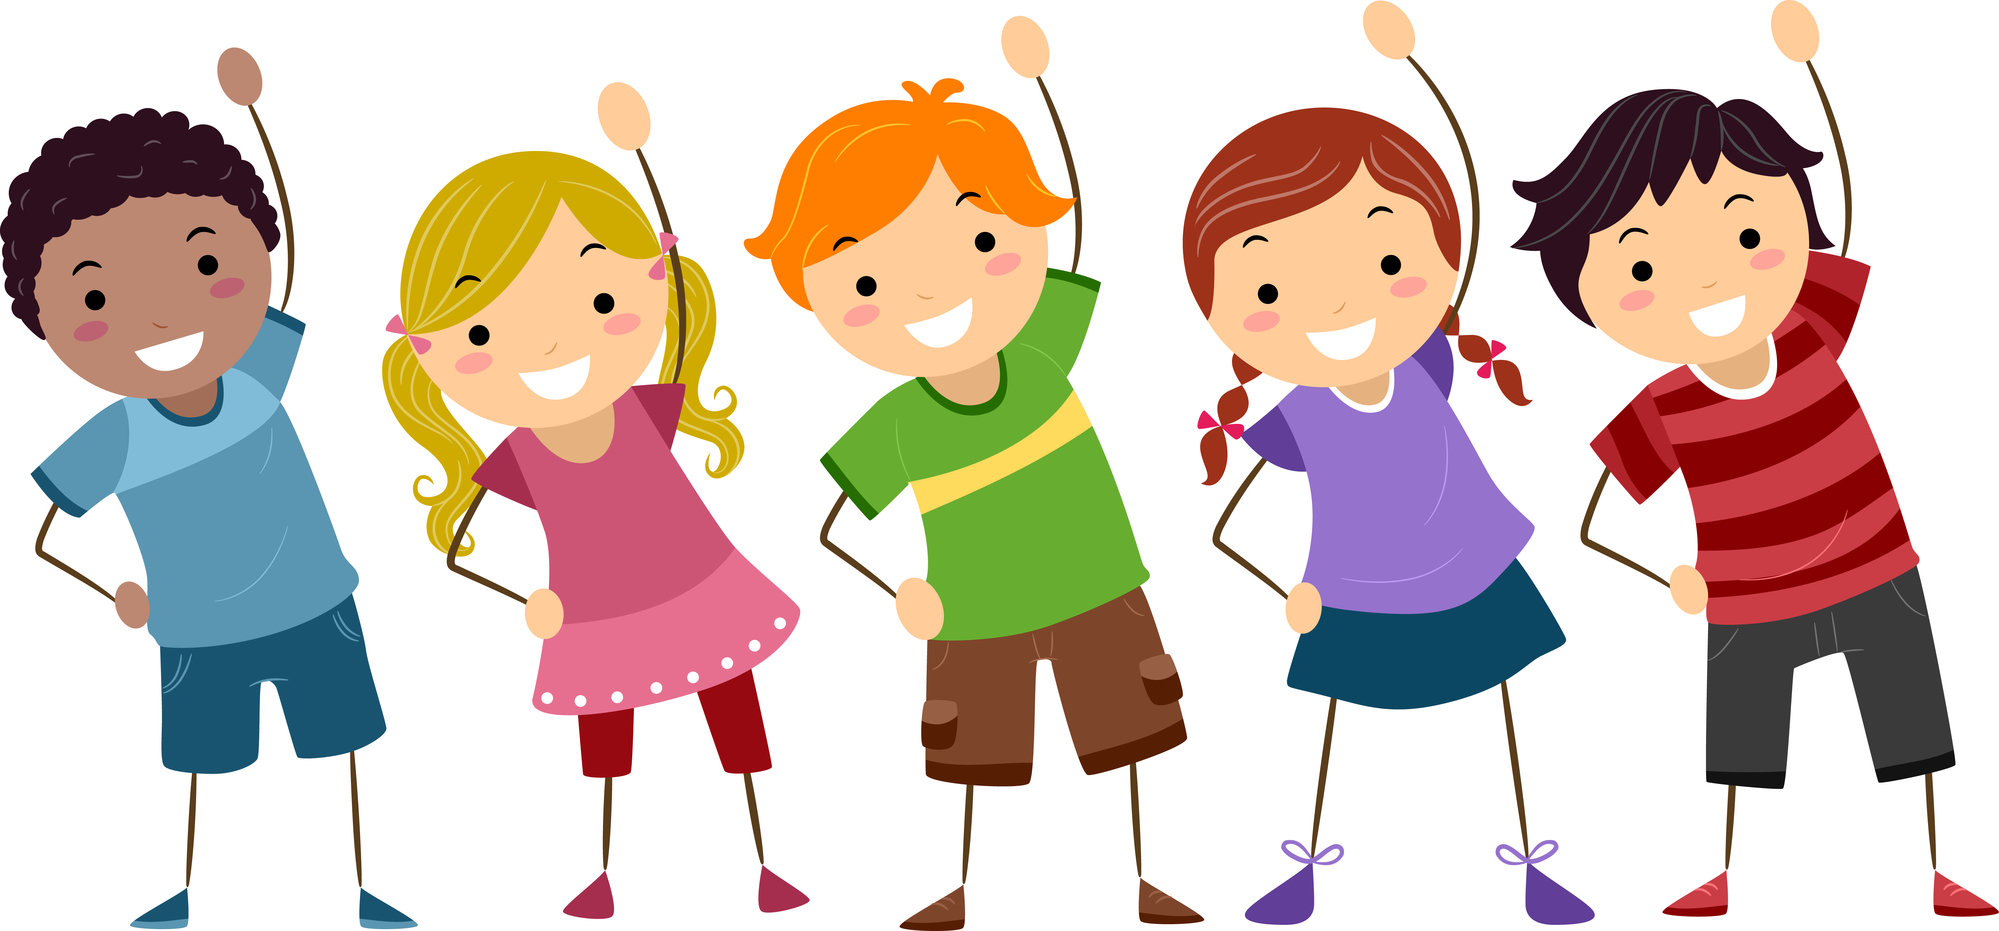 Archives integrative osteopathy kids. Action clipart physical activity